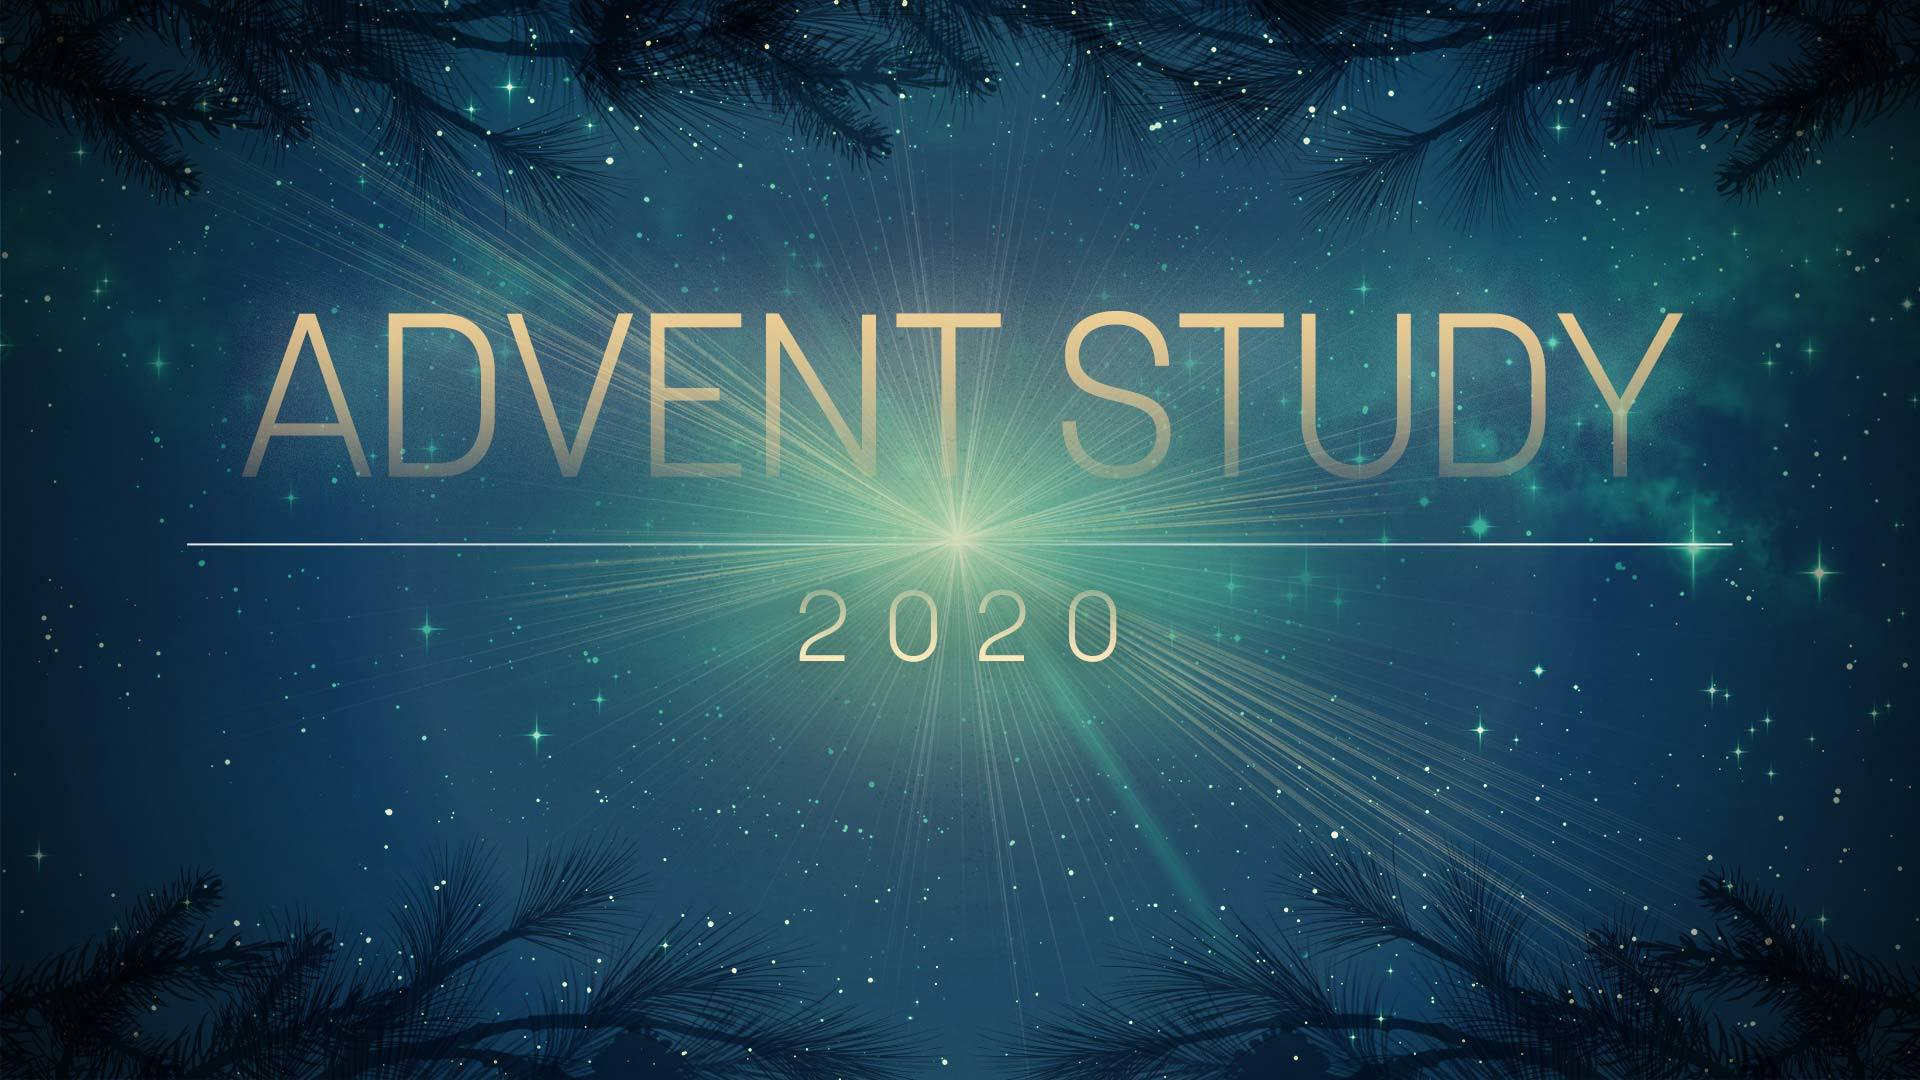 Advent Study2020 Cover